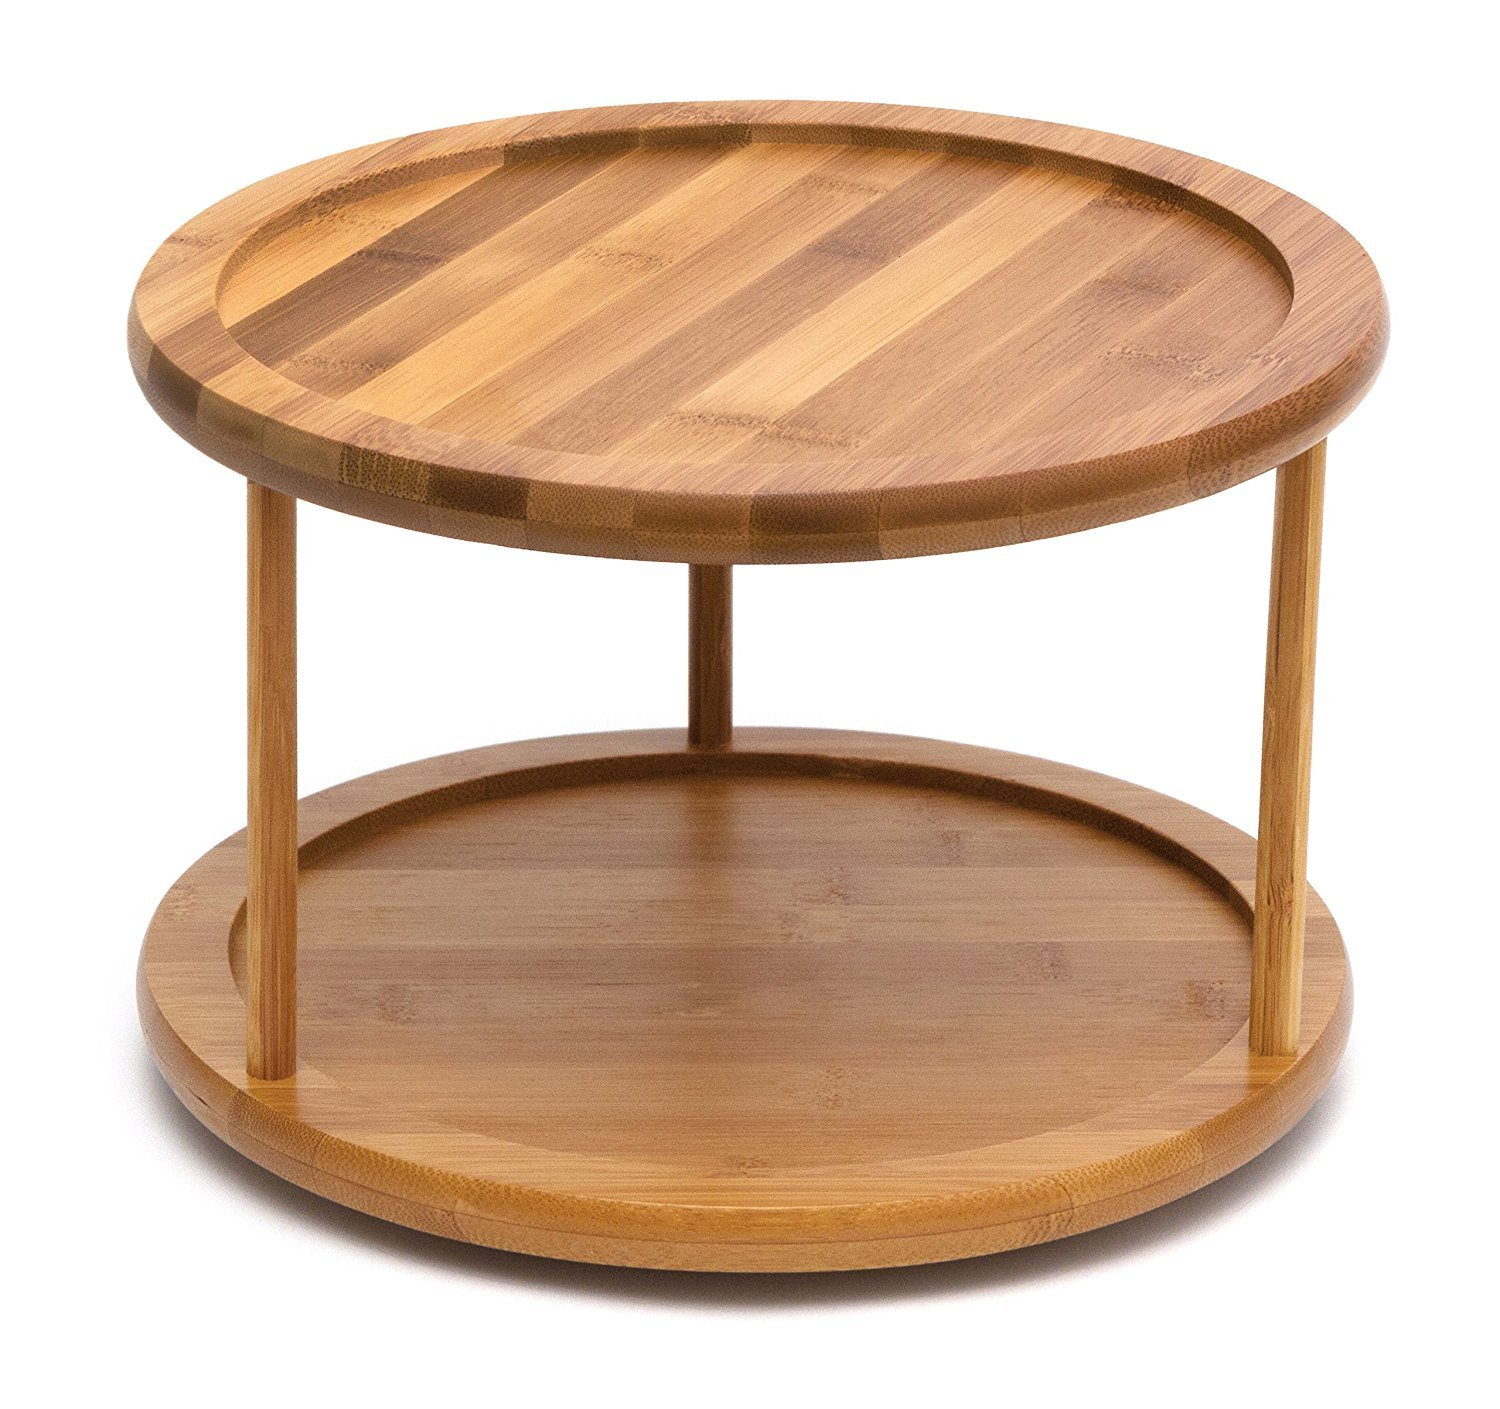 YBM HOME 2 Tier Bamboo Wooden Lazy Susan Turntable 10 Inch Diameter 479 by YBM HOME